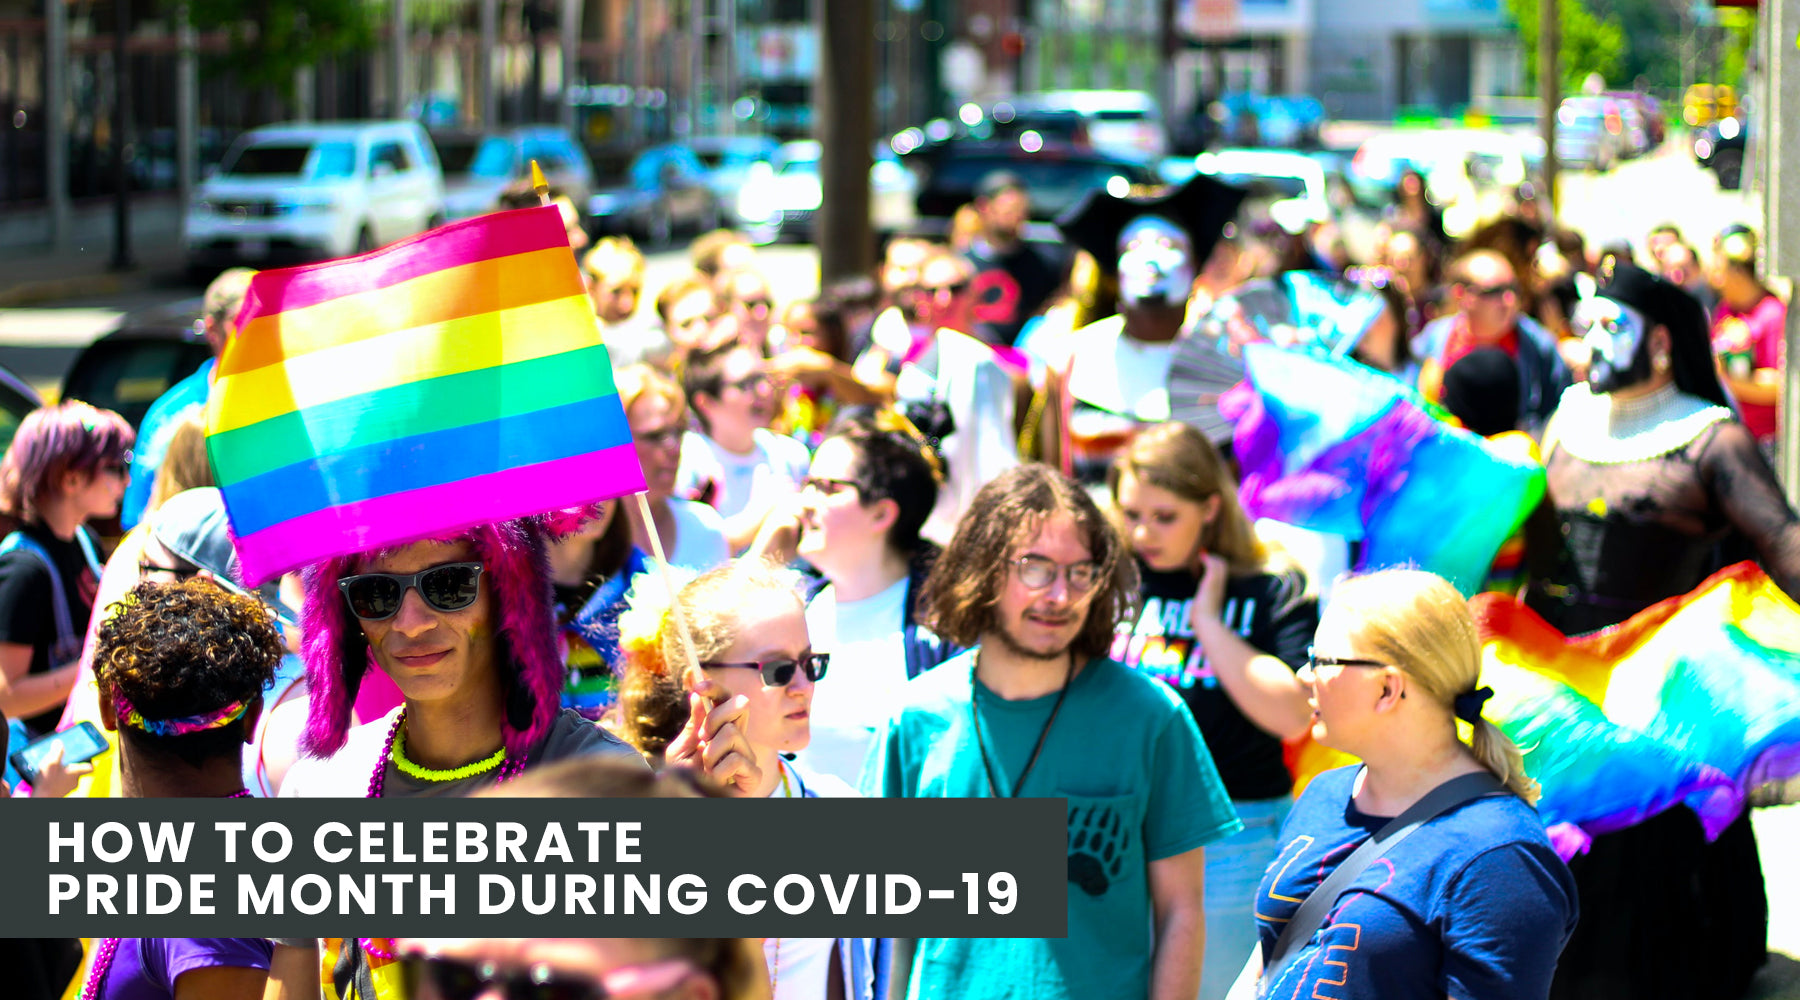 How to Celebrate Pride Month During COVID-19